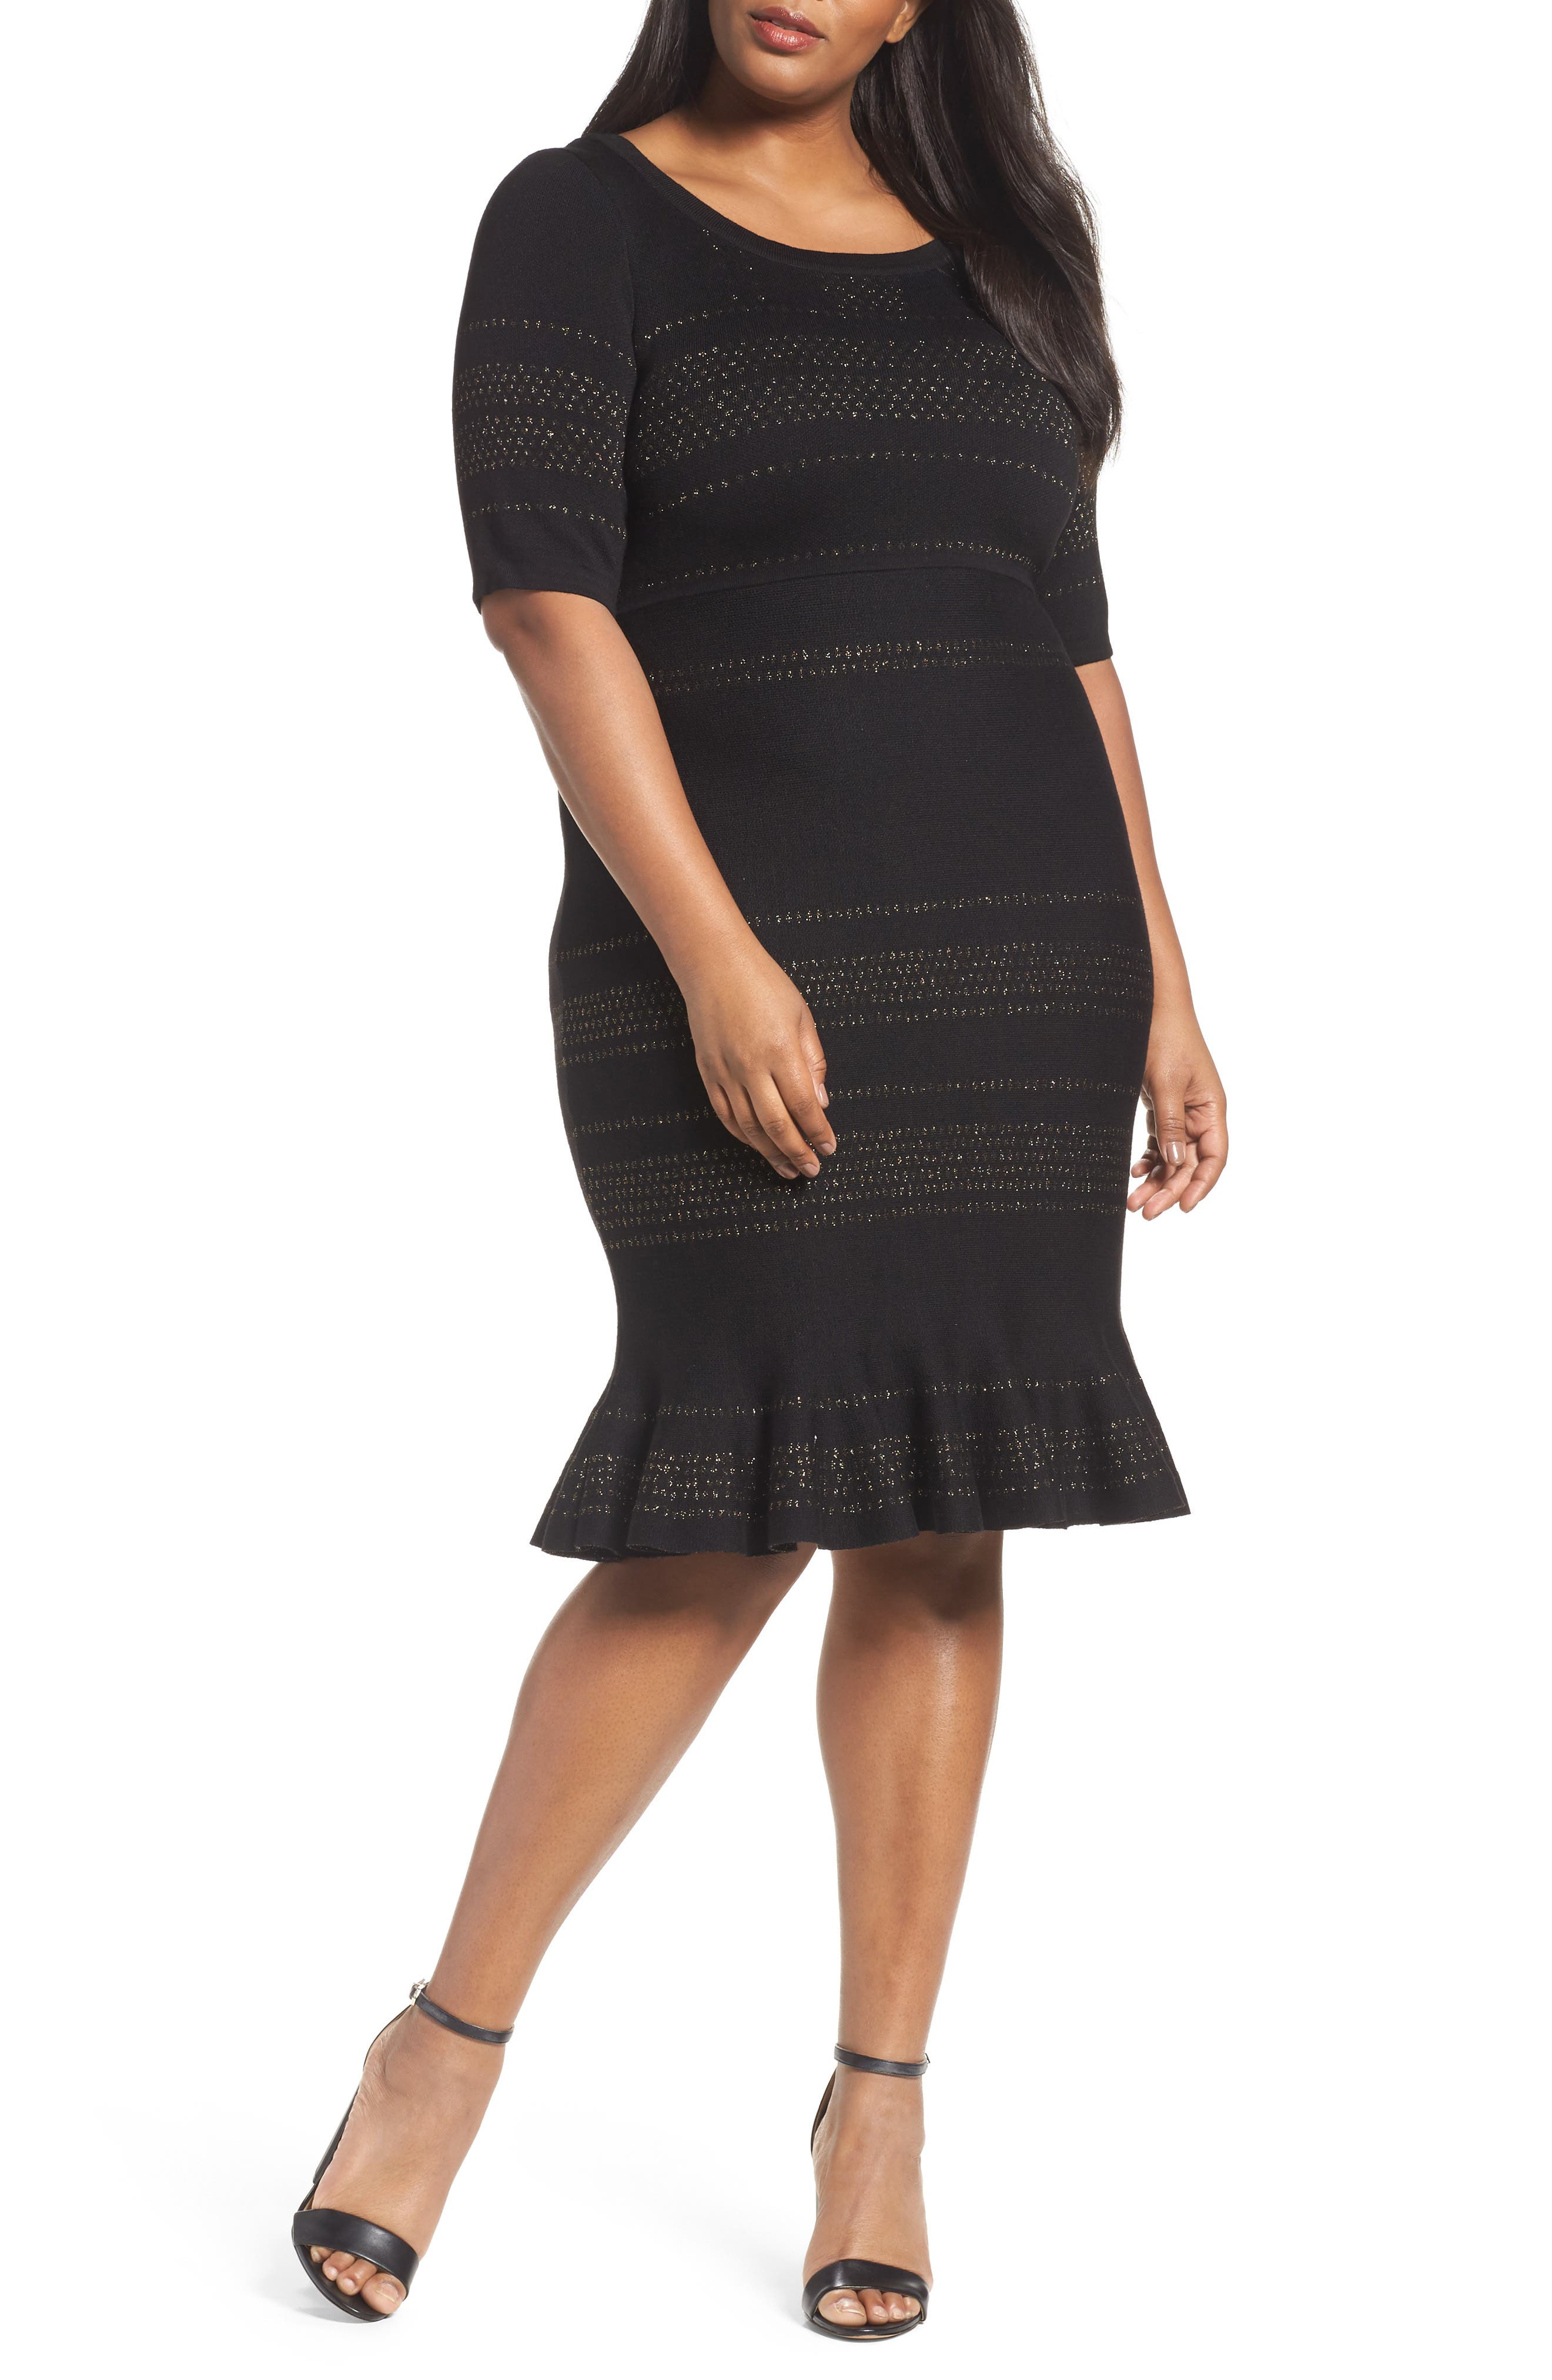 Lo lo lord and taylor party dresses - Lo Lo Lord And Taylor Party Dresses 54